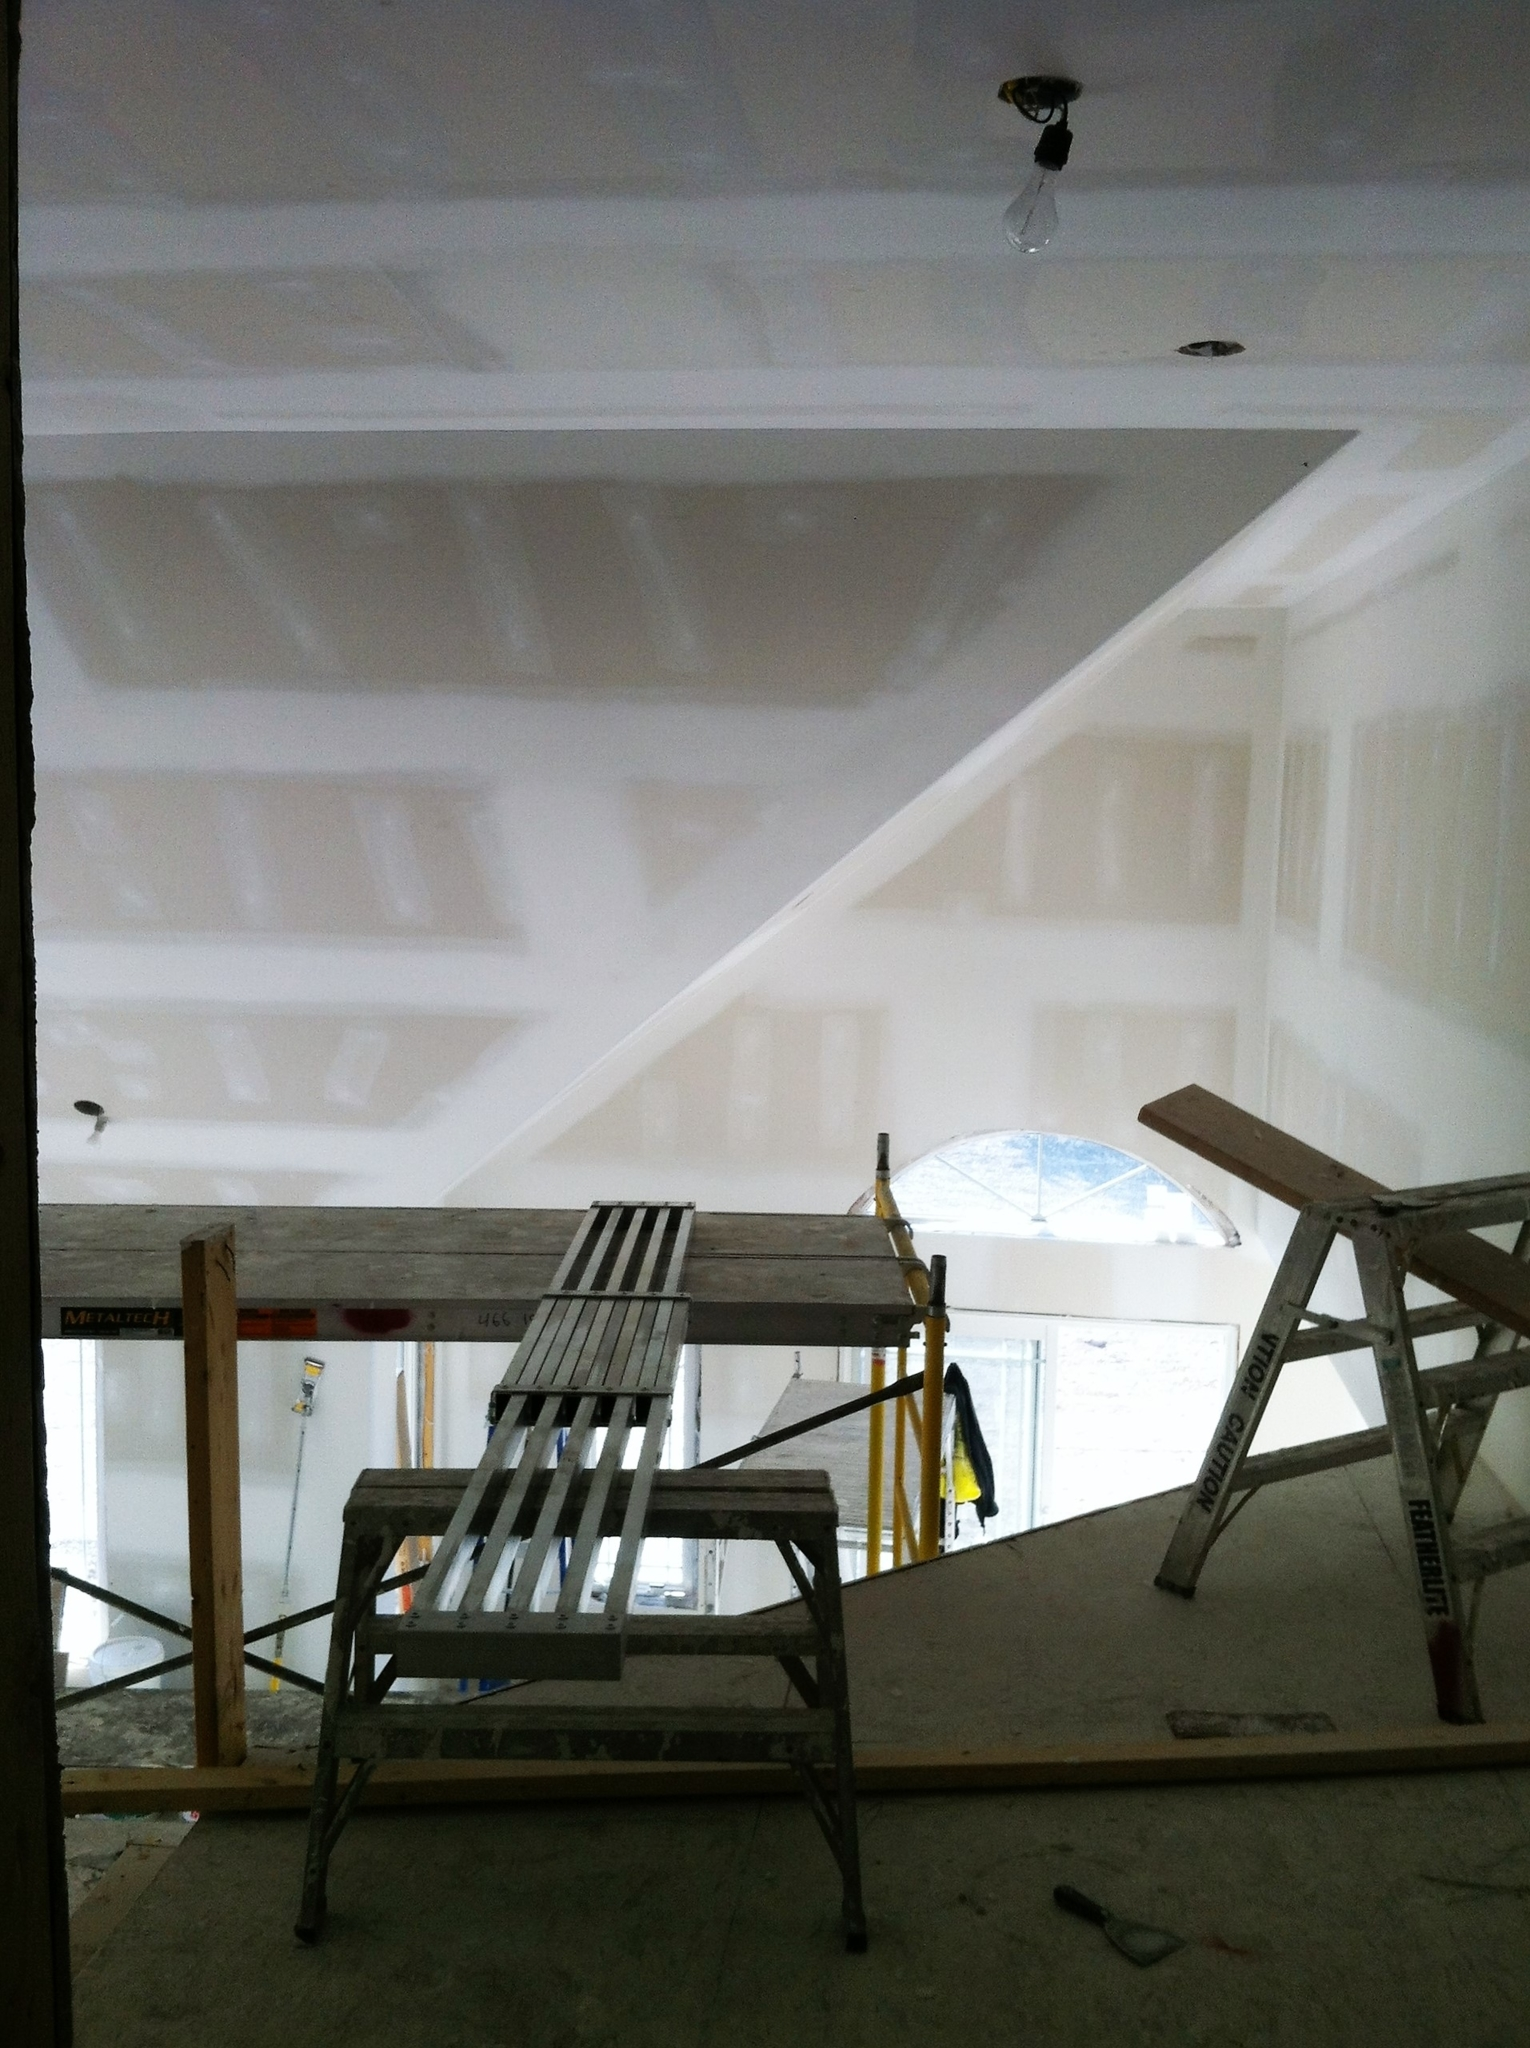 Precision Plastering And Painting Clarenville (709)425-2311